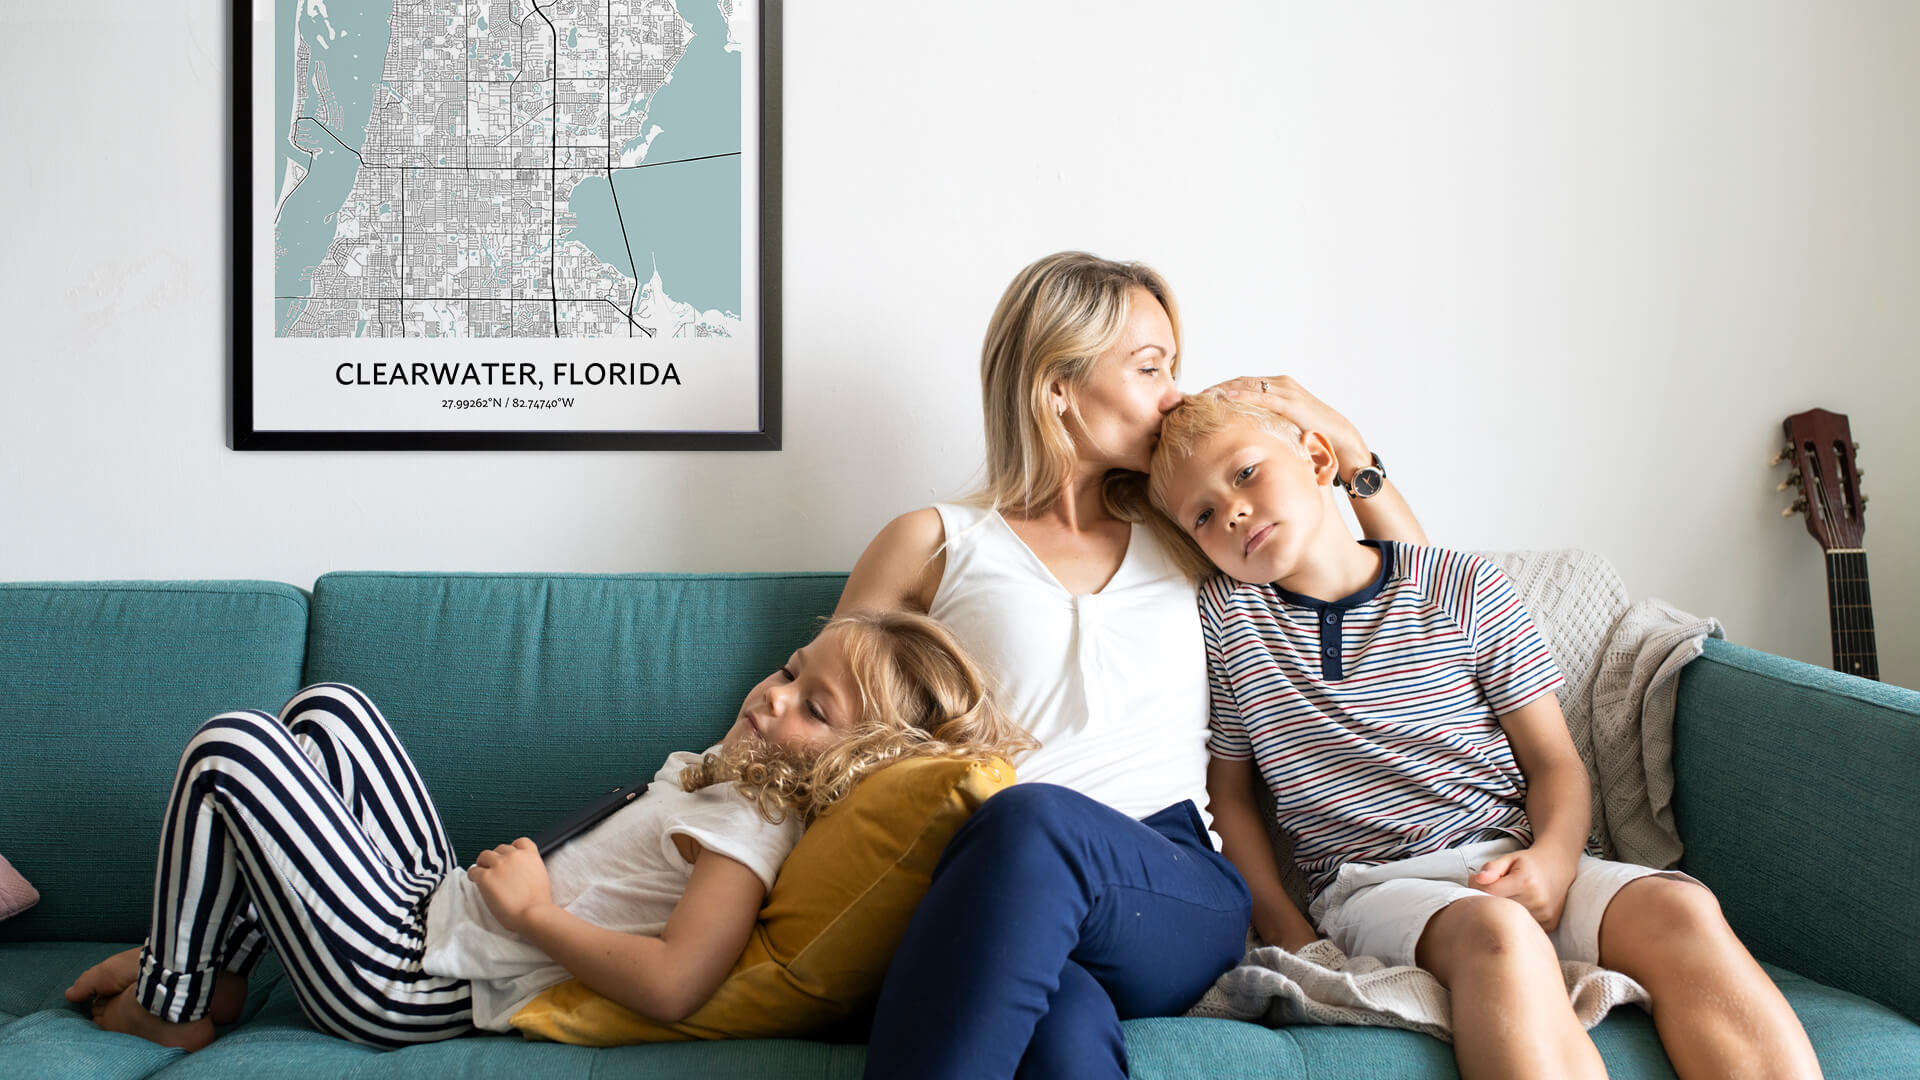 Clearwater map poster